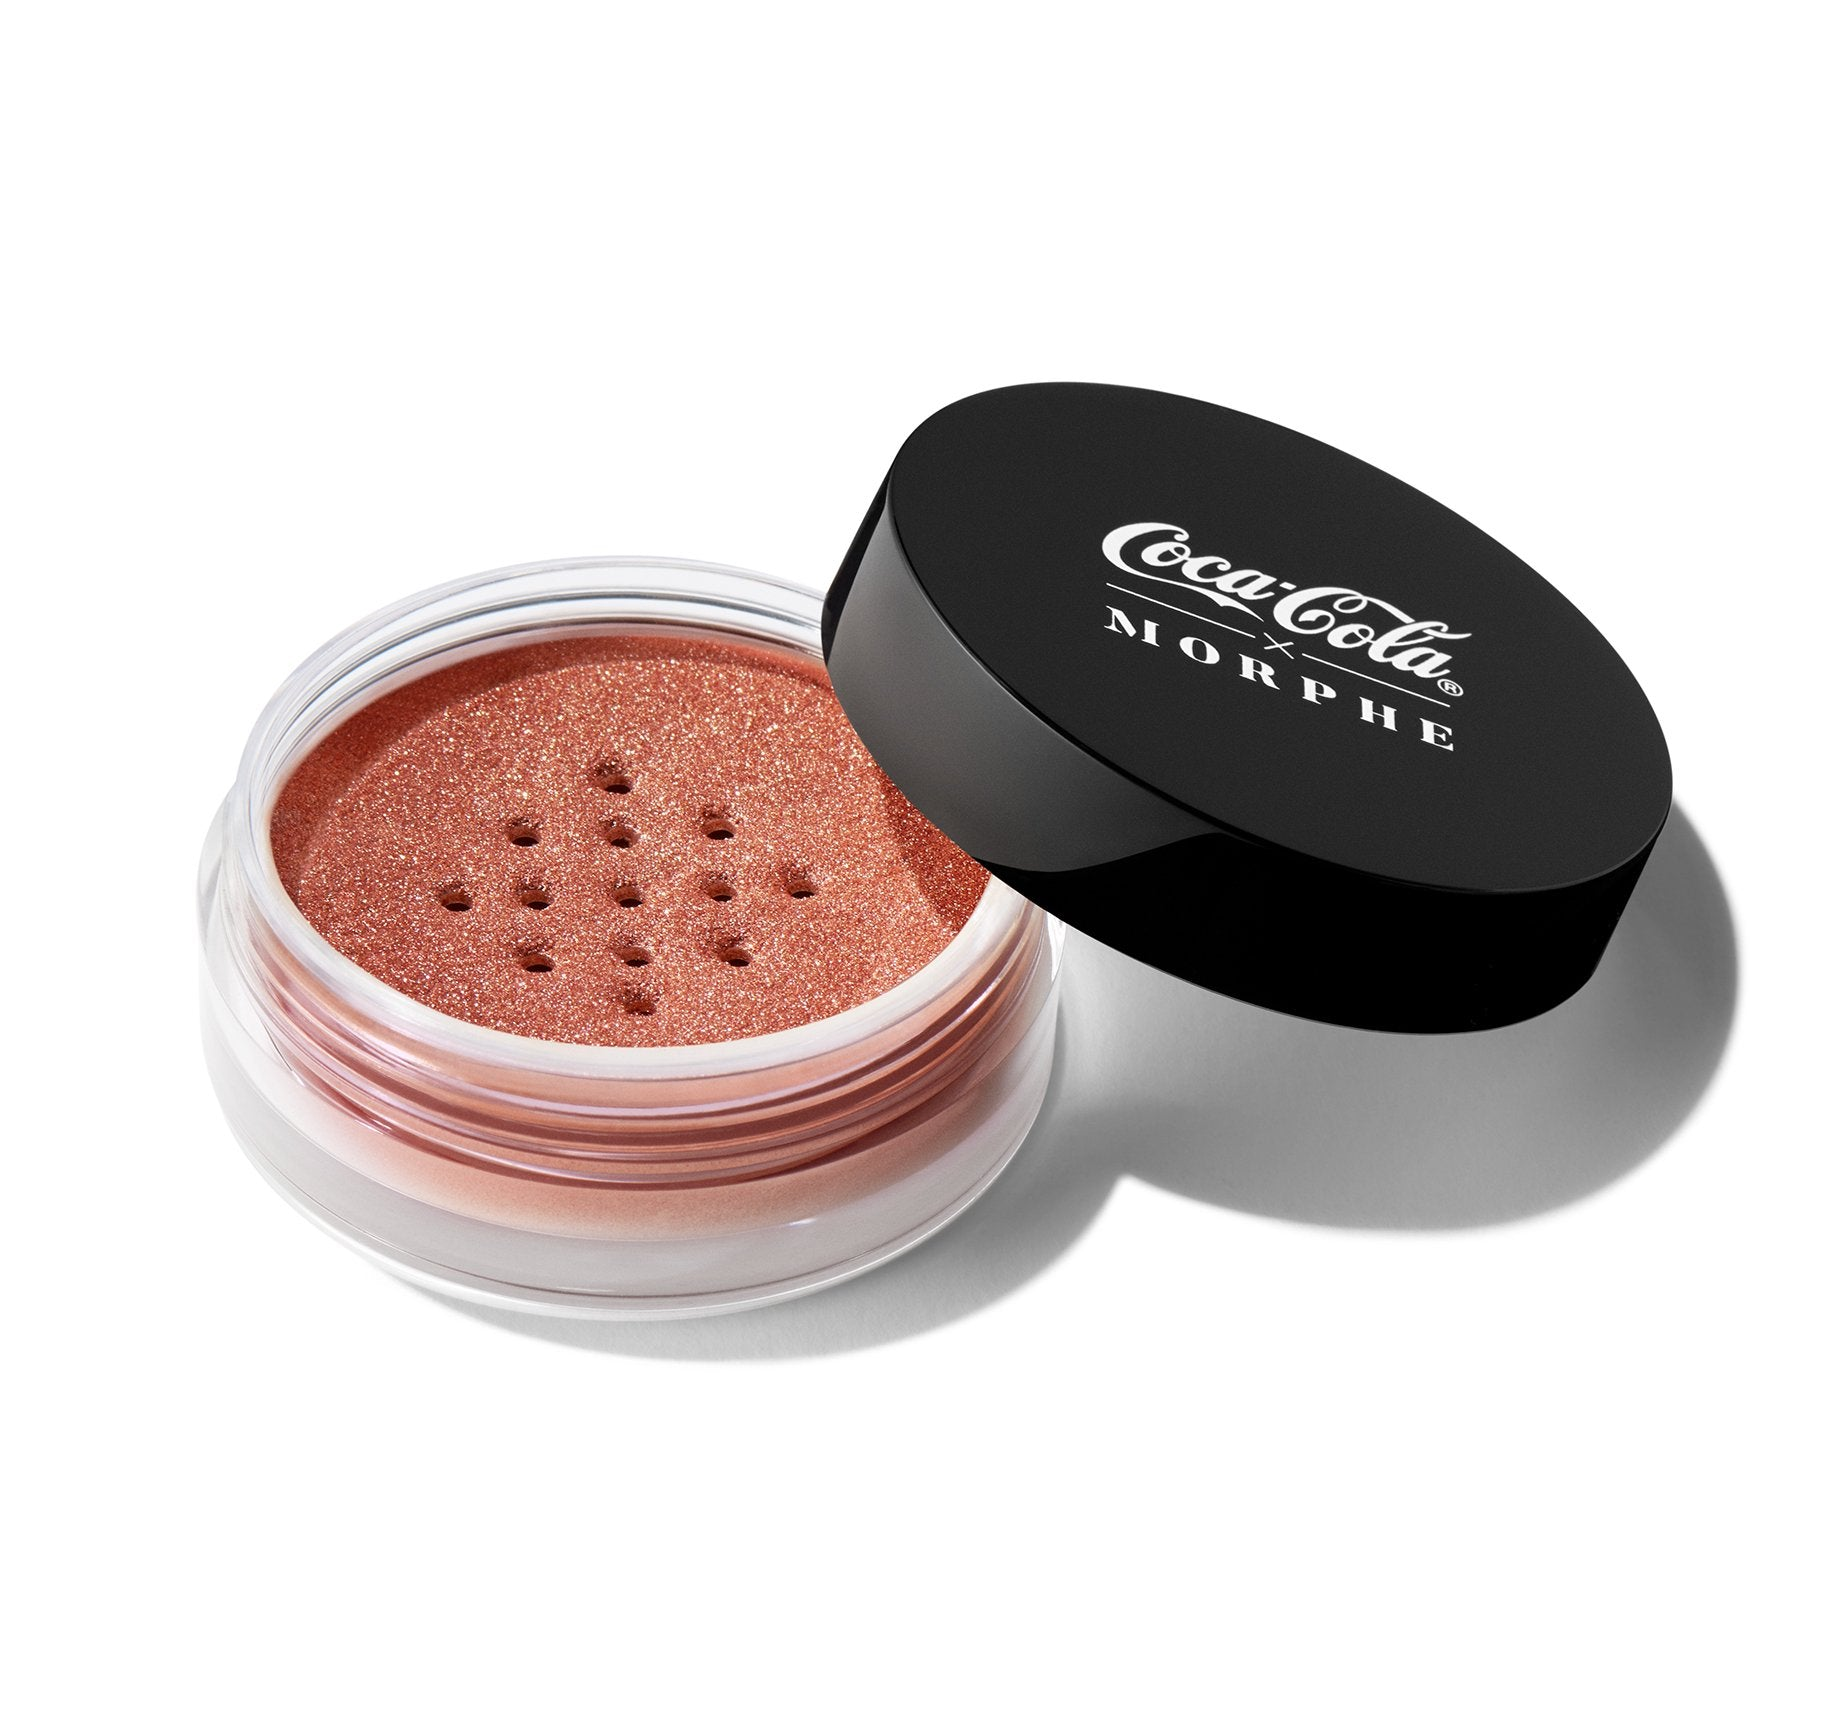 COCA-COLA X MORPHE GLOWING PLACES LOOSE HIGHLIGHTER - SERVE SPARKLING, view larger image